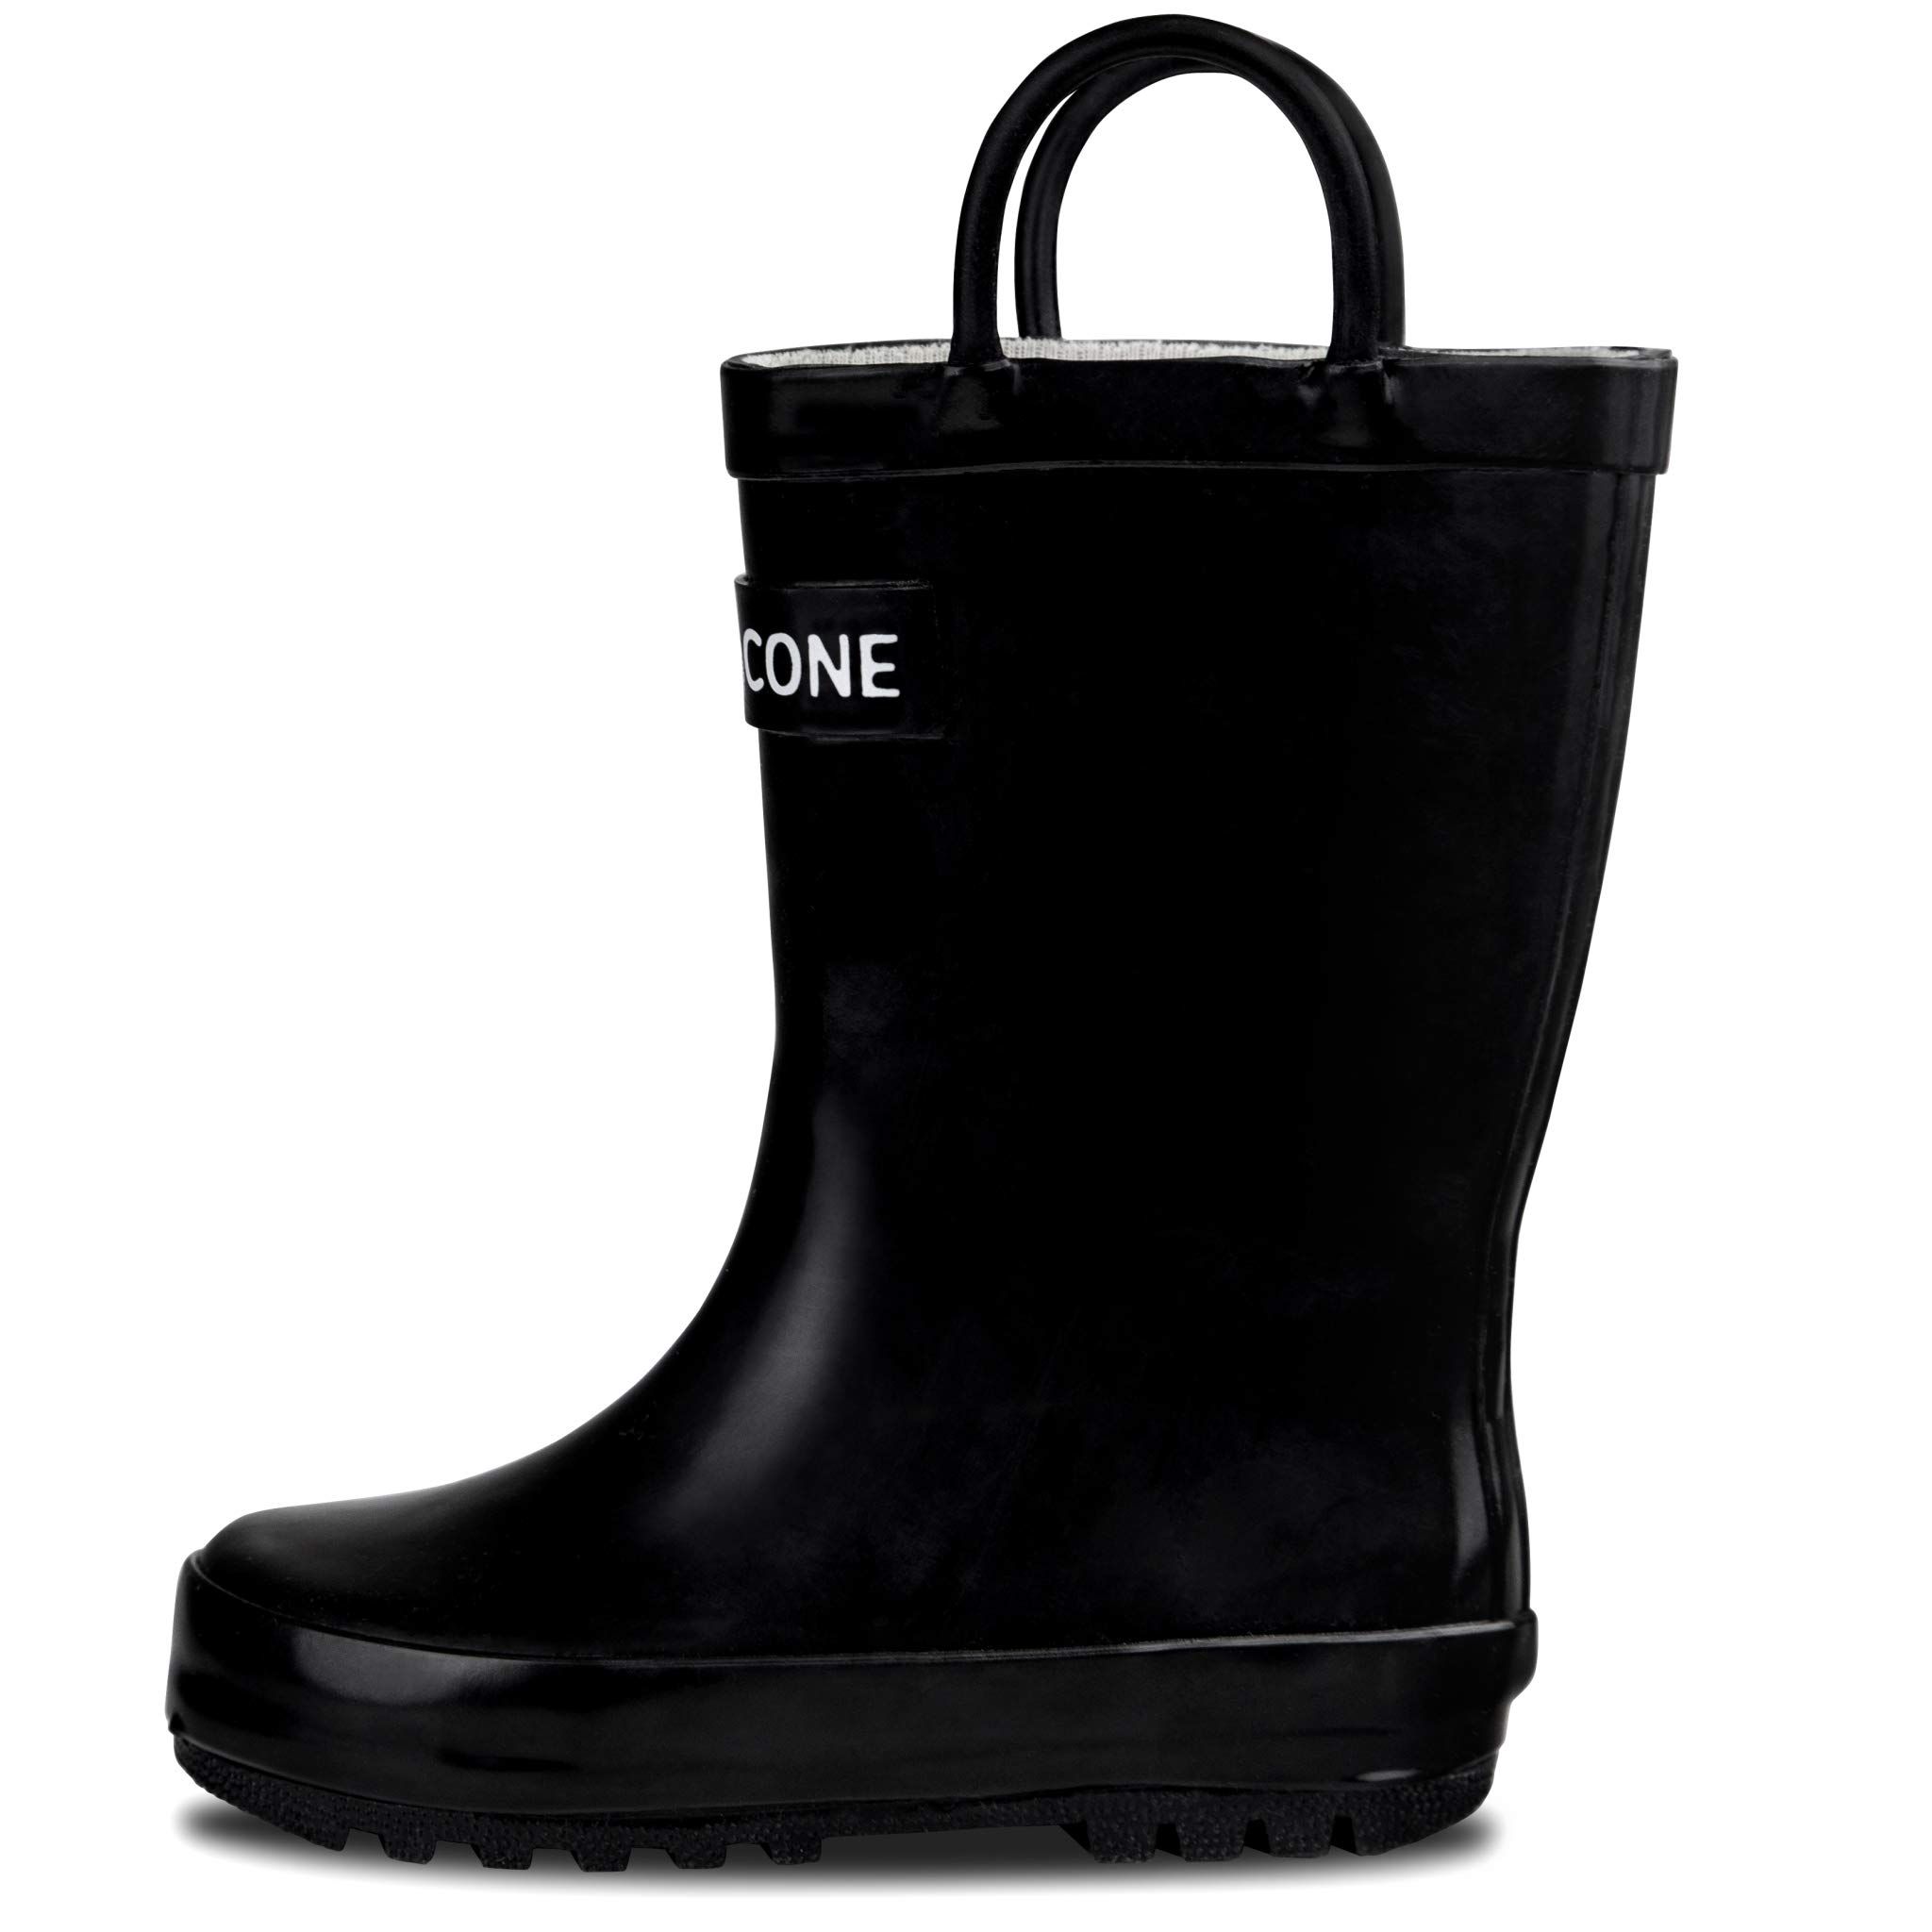 LONECONE Rain Boots with Easy-On Handles for Toddlers and Kids, Shiny Black, Toddler 10